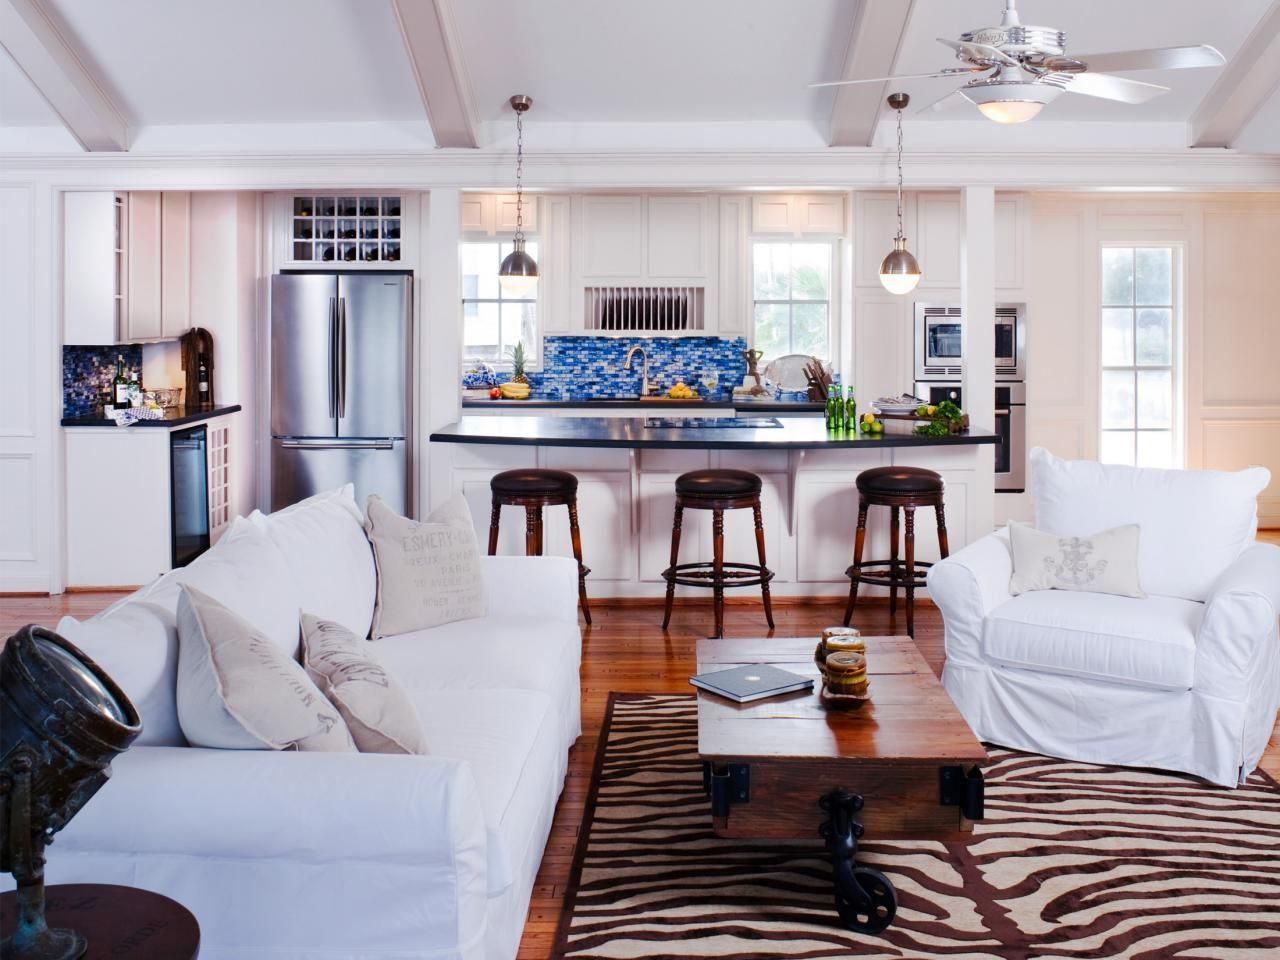 Seaside Chic | Interior Design Styles and Color Schemes for Home ...